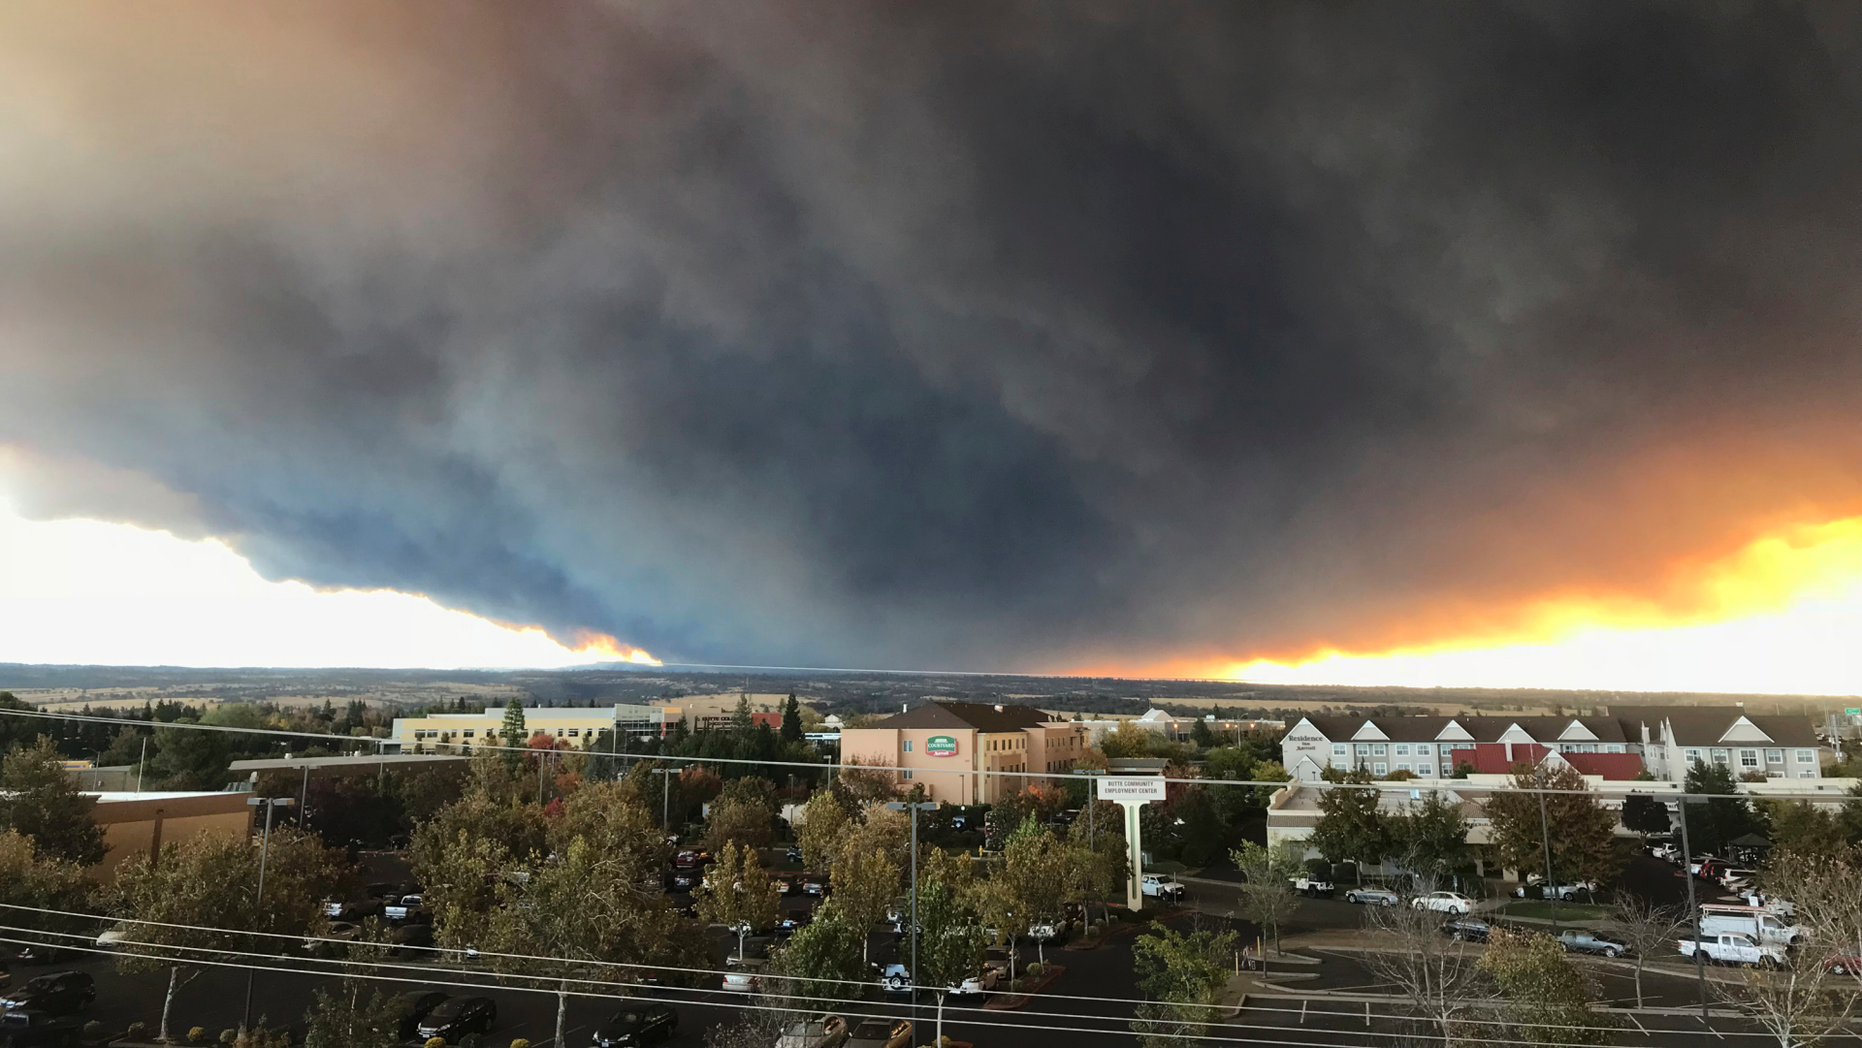 Thousands flee raging wildfires in California